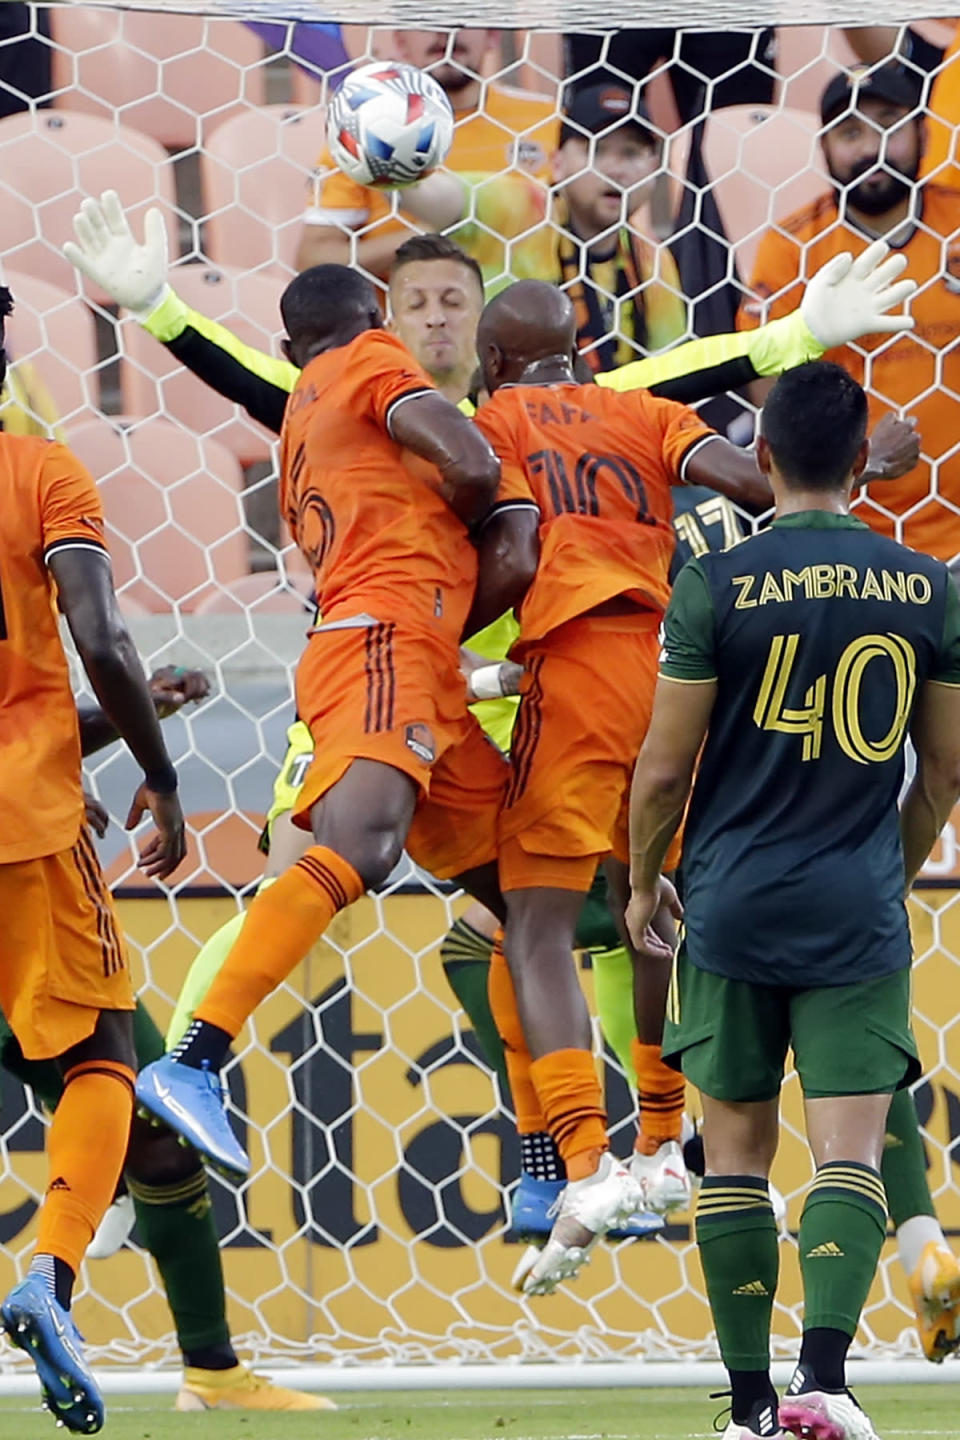 Houston Dynamo's Maynor Figueroa (15) and Fafa Picault (10) both go for a header for a goal as Portland Timbers goalkeeper Aljaz Ivacic, back, attempts to block during the first half of an MLS soccer match Wednesday, June 23, 2021, in Houston. Picault was credited with the goal. (AP Photo/Michael Wyke)